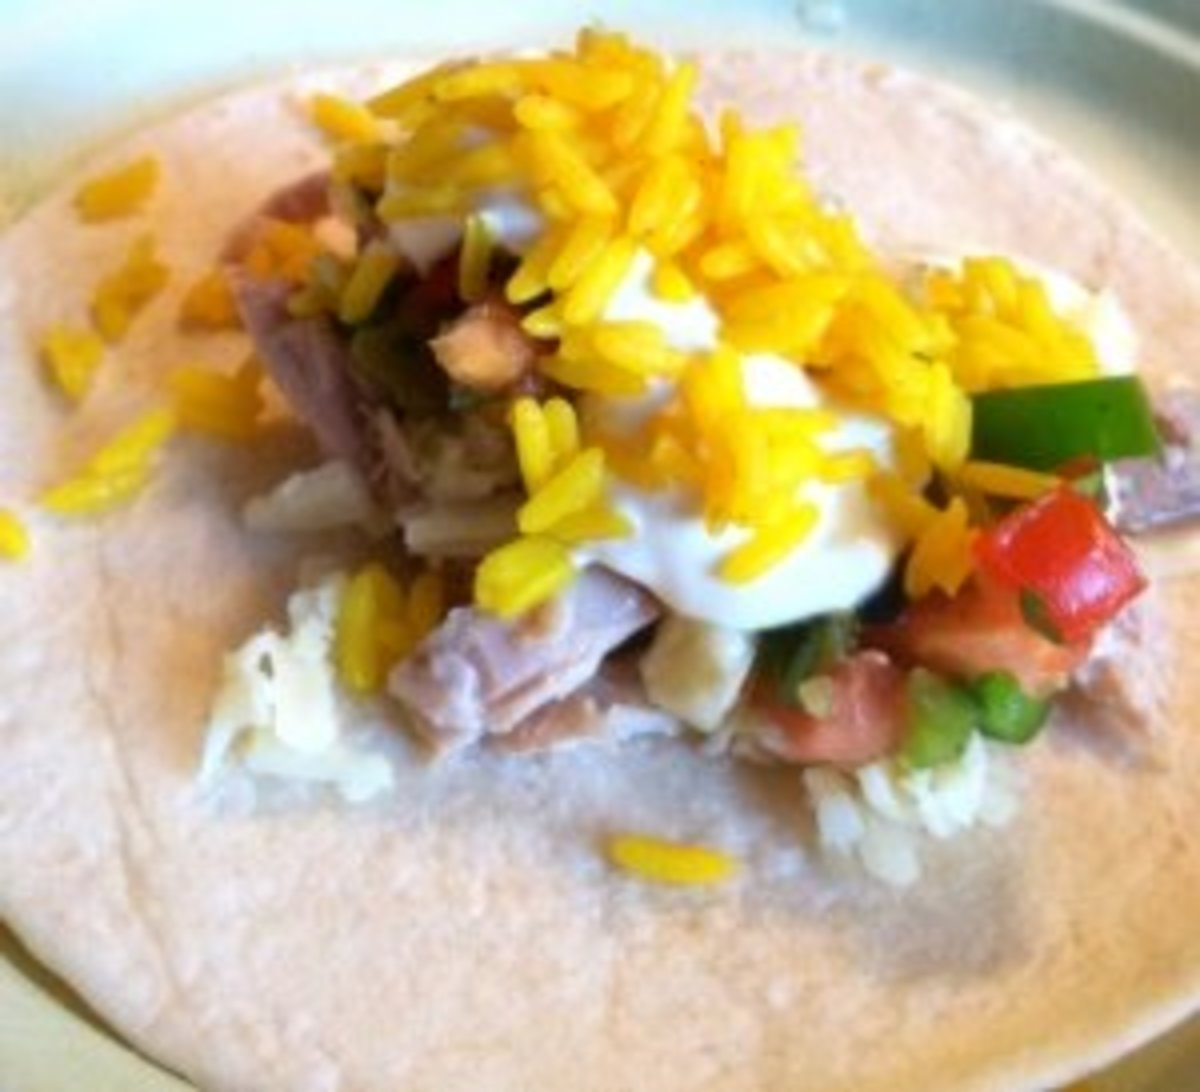 A taco with all the fixin's.